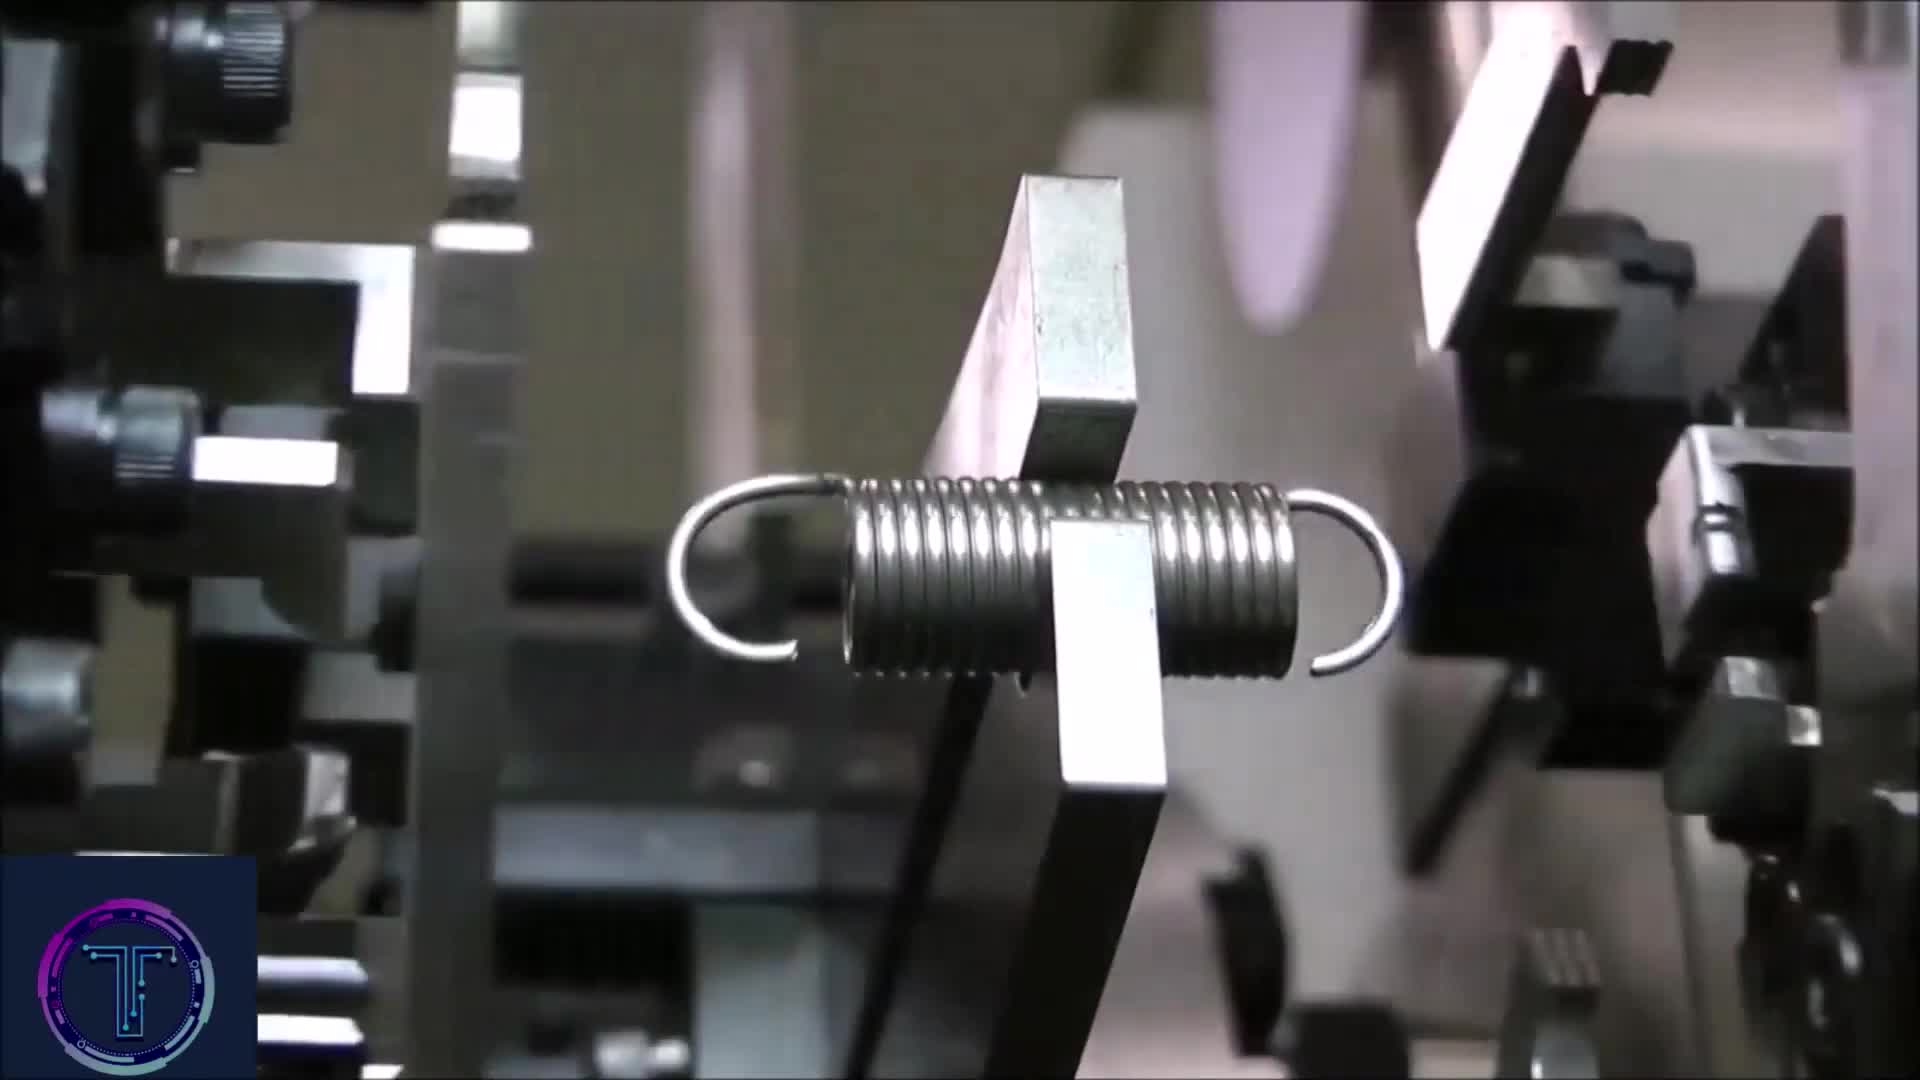 amazing, amazing inventions, awesome, best, cool, cool gadgets, cool inventions, cool things, future tech, gadgets, handmade, homemade inventions, inventions, latest, must have, new, new inventions, tech, technology, unboxing, extension spring GIFs